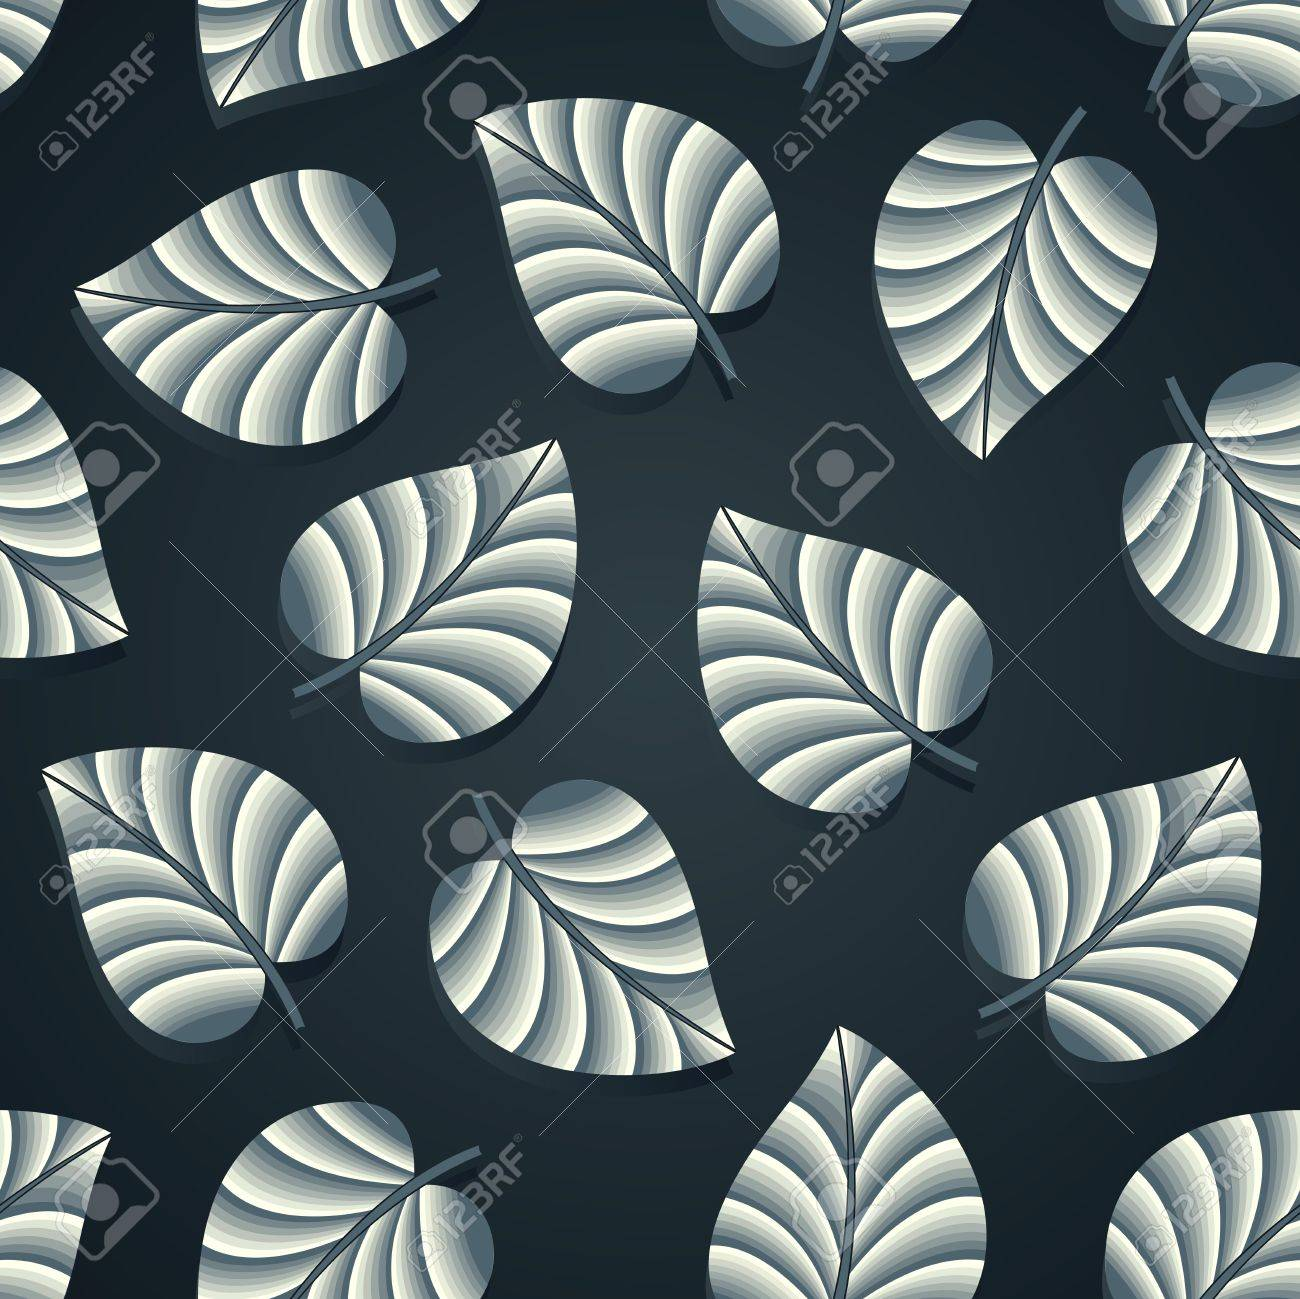 Black bed sheet texture - Royal Seamless Leaves Wallpaper Stock Vector 18553192